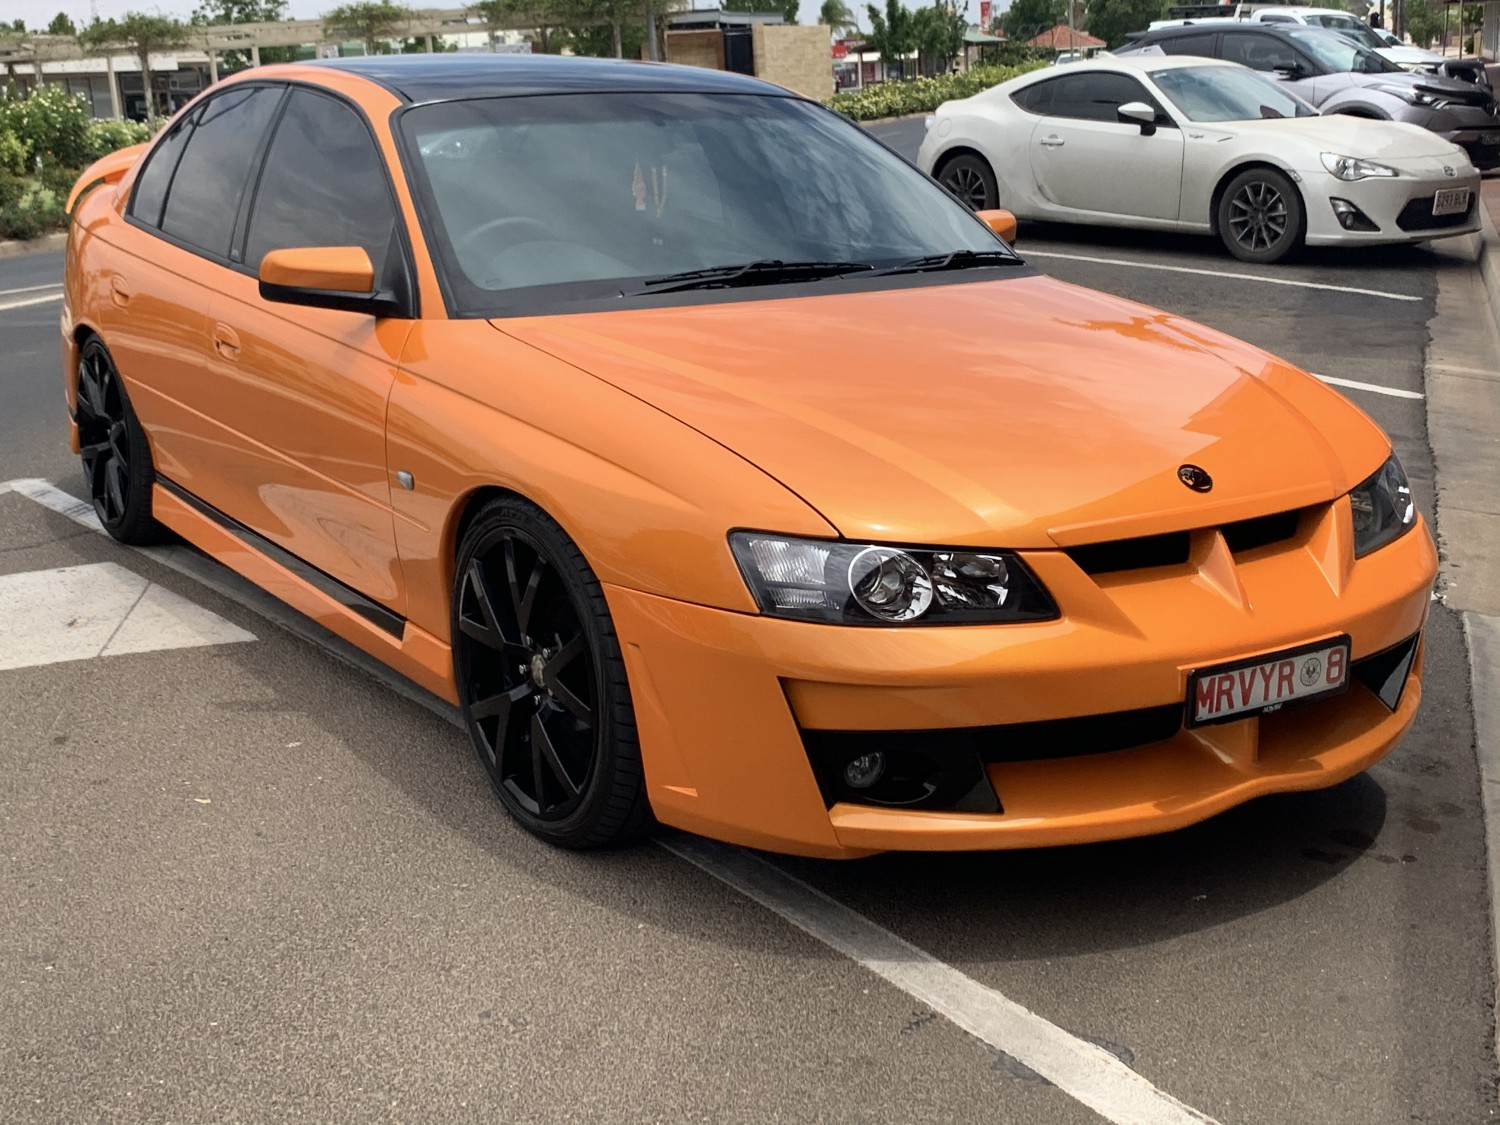 2003 Holden Special Vehicles Vy